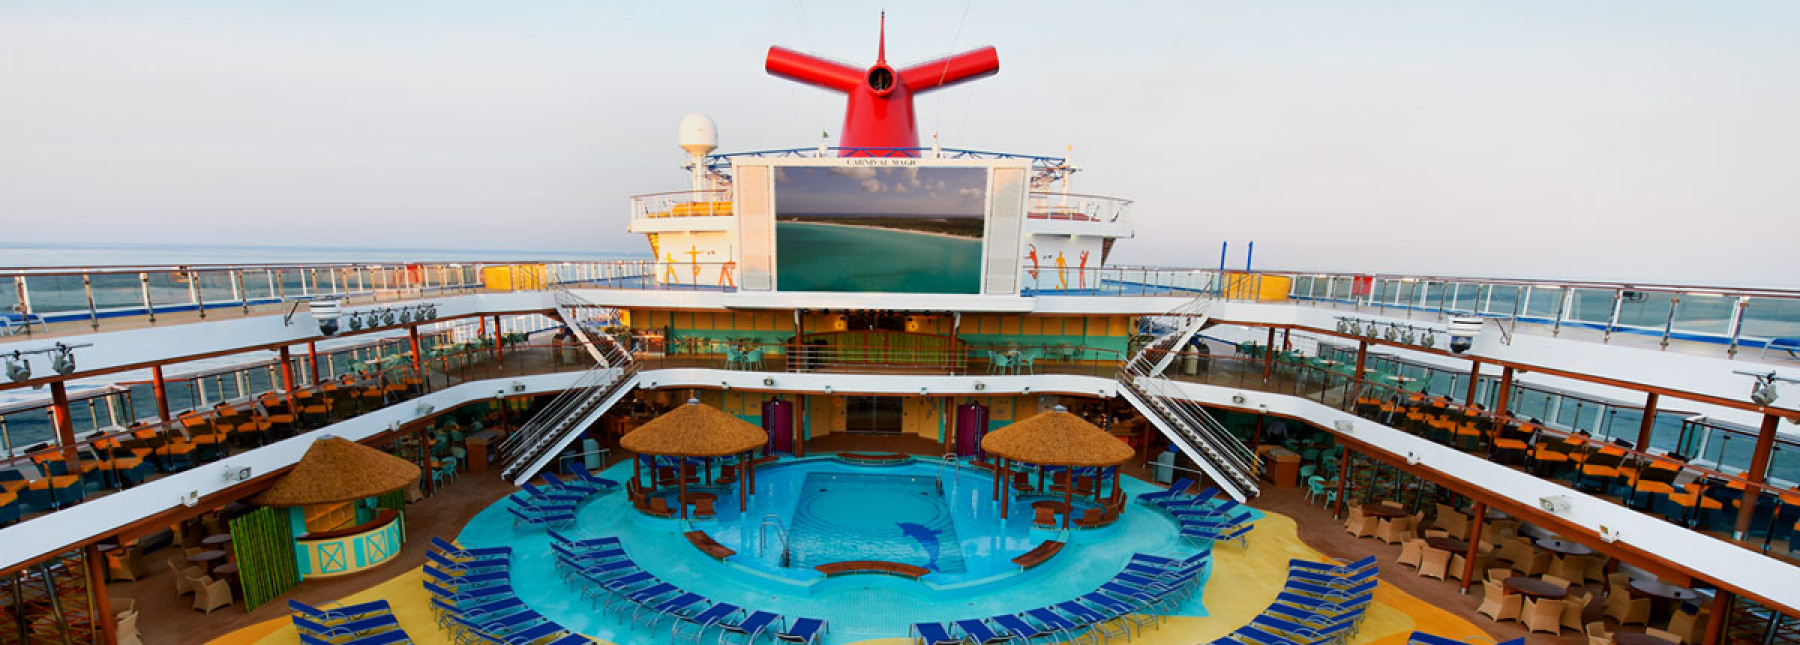 Carnival Cruise Lines Carnival Dream Exterior carnival-seaside-theater-1.jpg